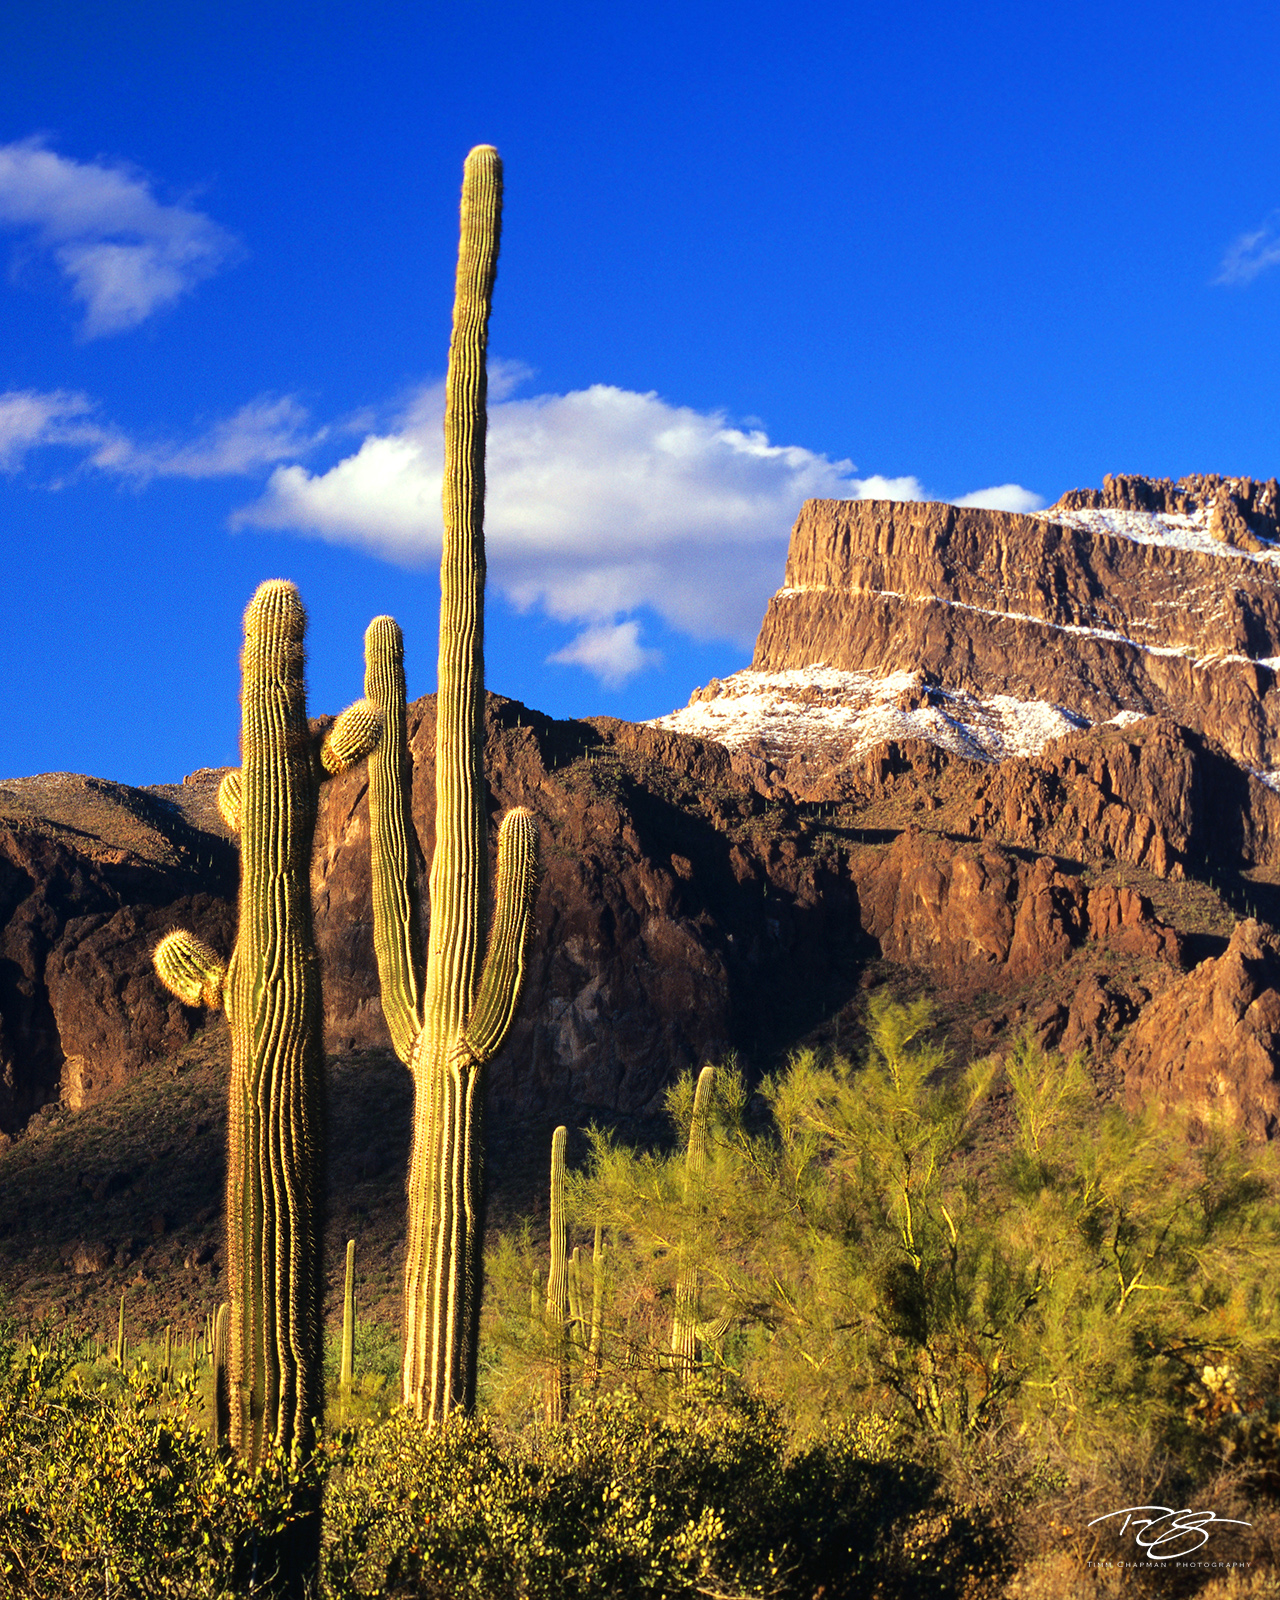 Arizona, Superstition Mountain, Superstition snows, snow on Superstition Mountain, cactus, saguaro, superstition wildersness, snow in the desert, golden light, snow, saguaro cactus, cacti, photo